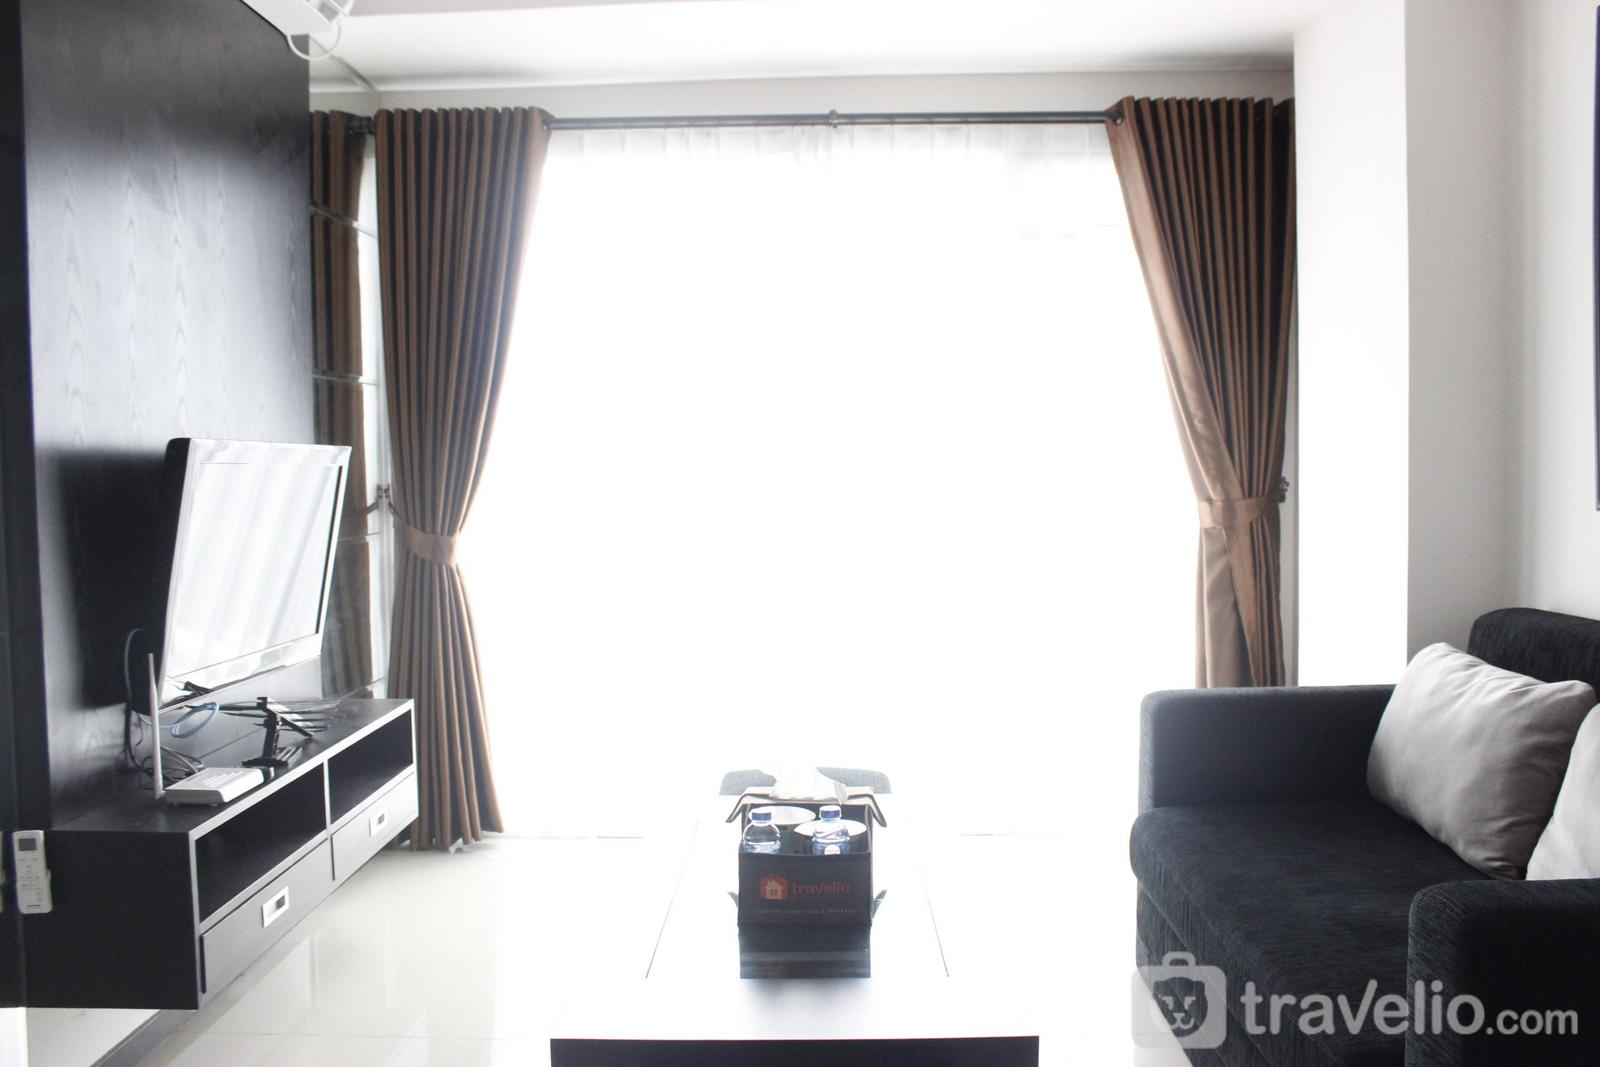 Gateway Pasteur Apartment - Comfortable & Gorgeous 2BR at Gateway Pasteur Apartment By Travelio